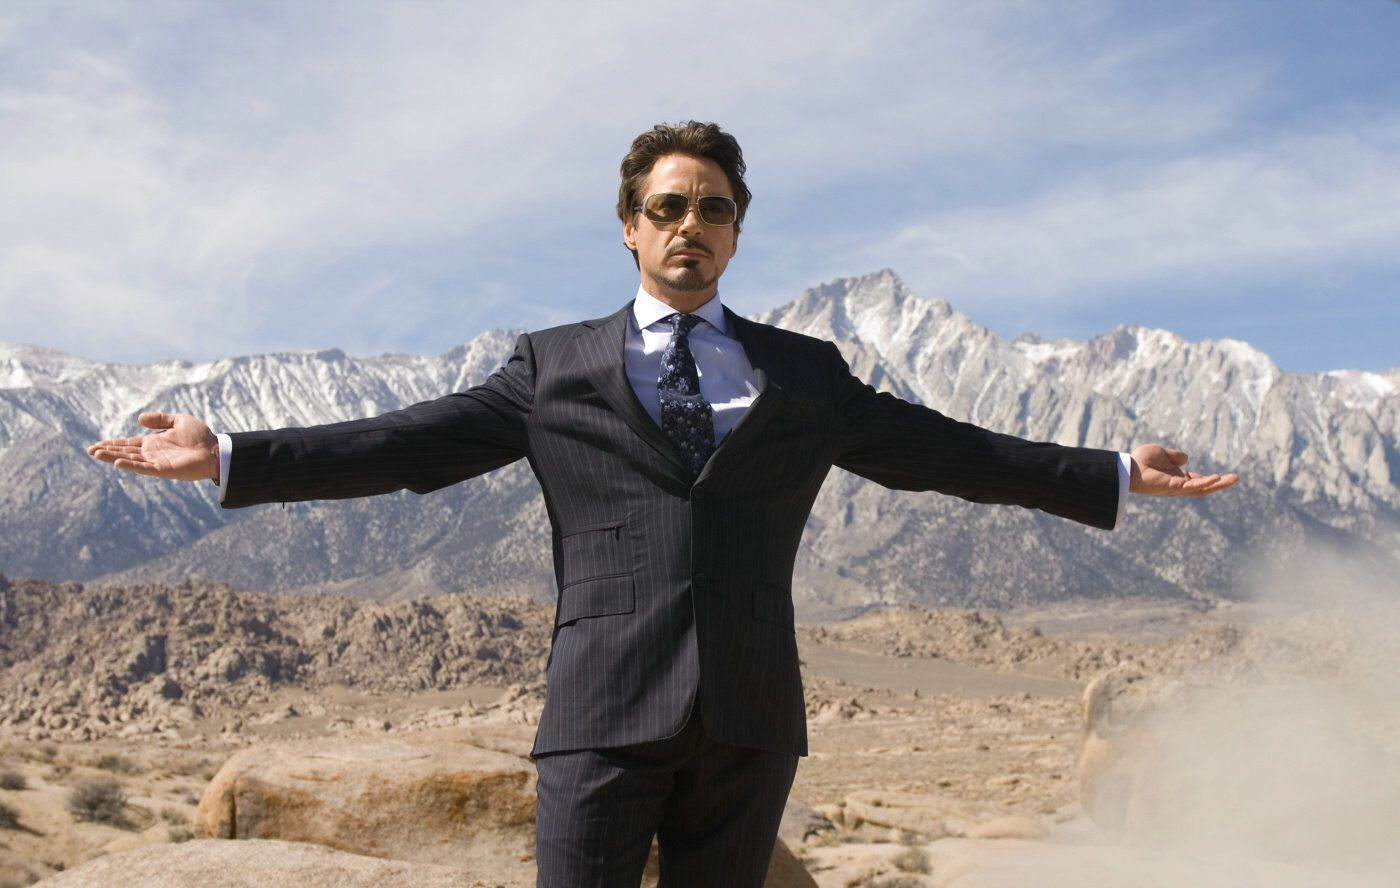 iron-man-1-robert-downey-jr.jpg